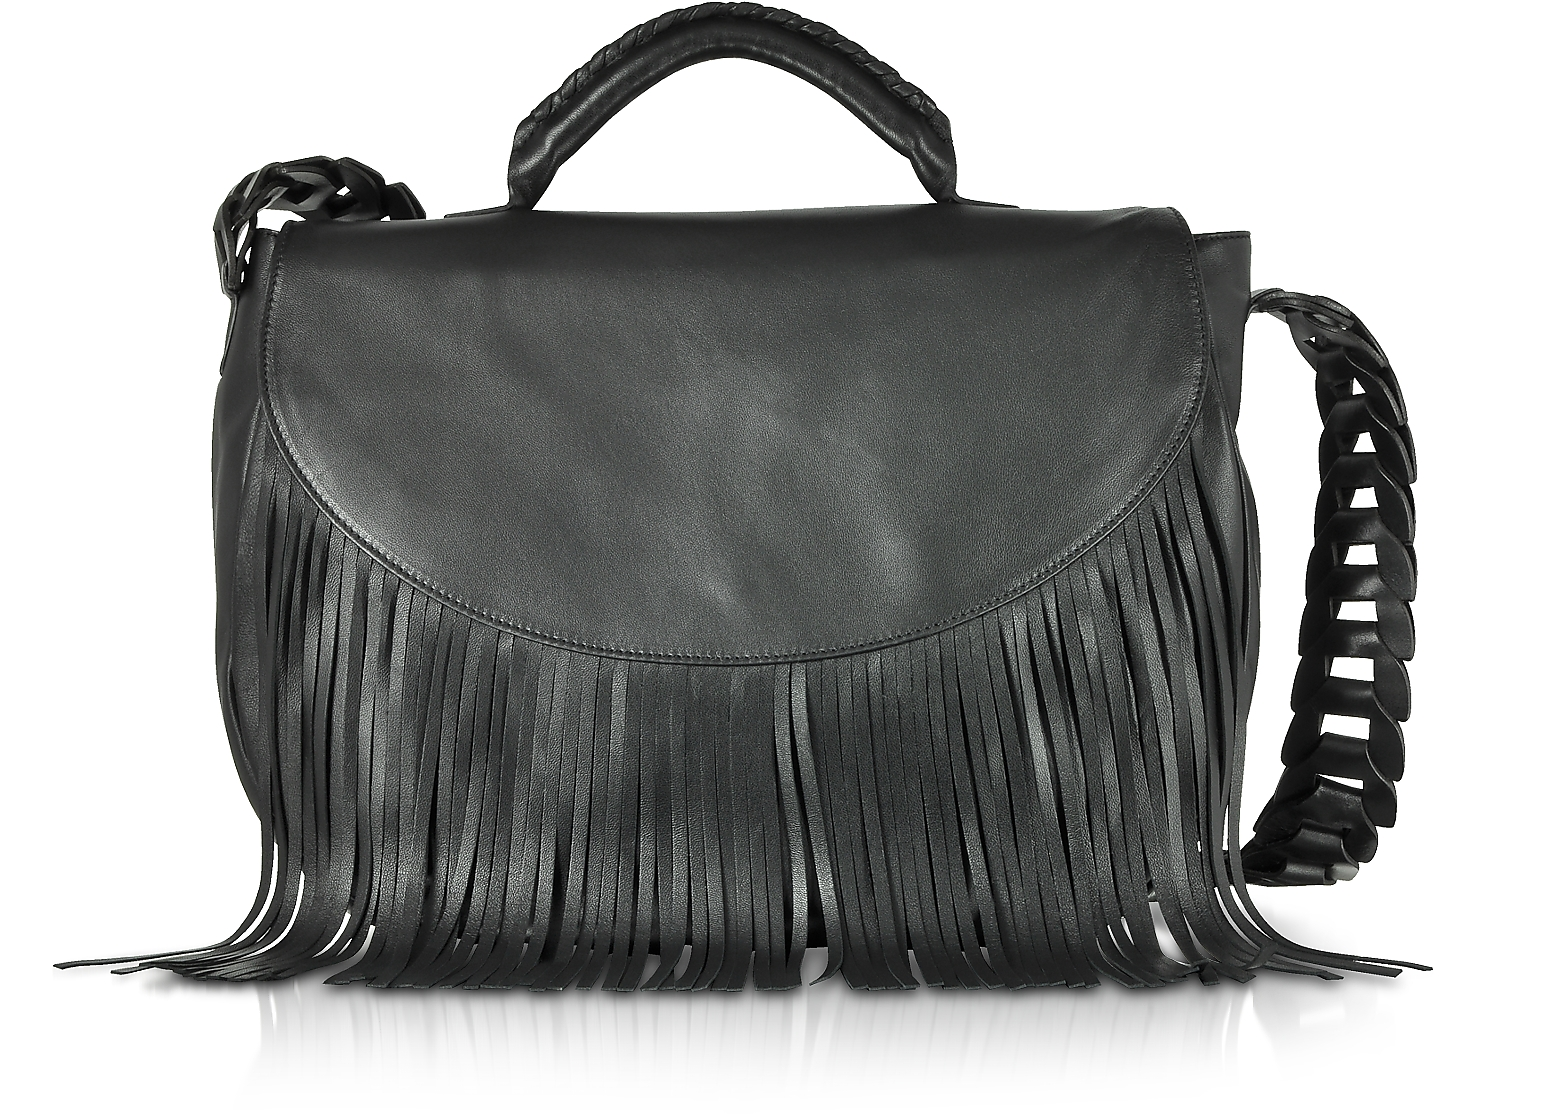 Black Fringed Leather Shoulder Bag